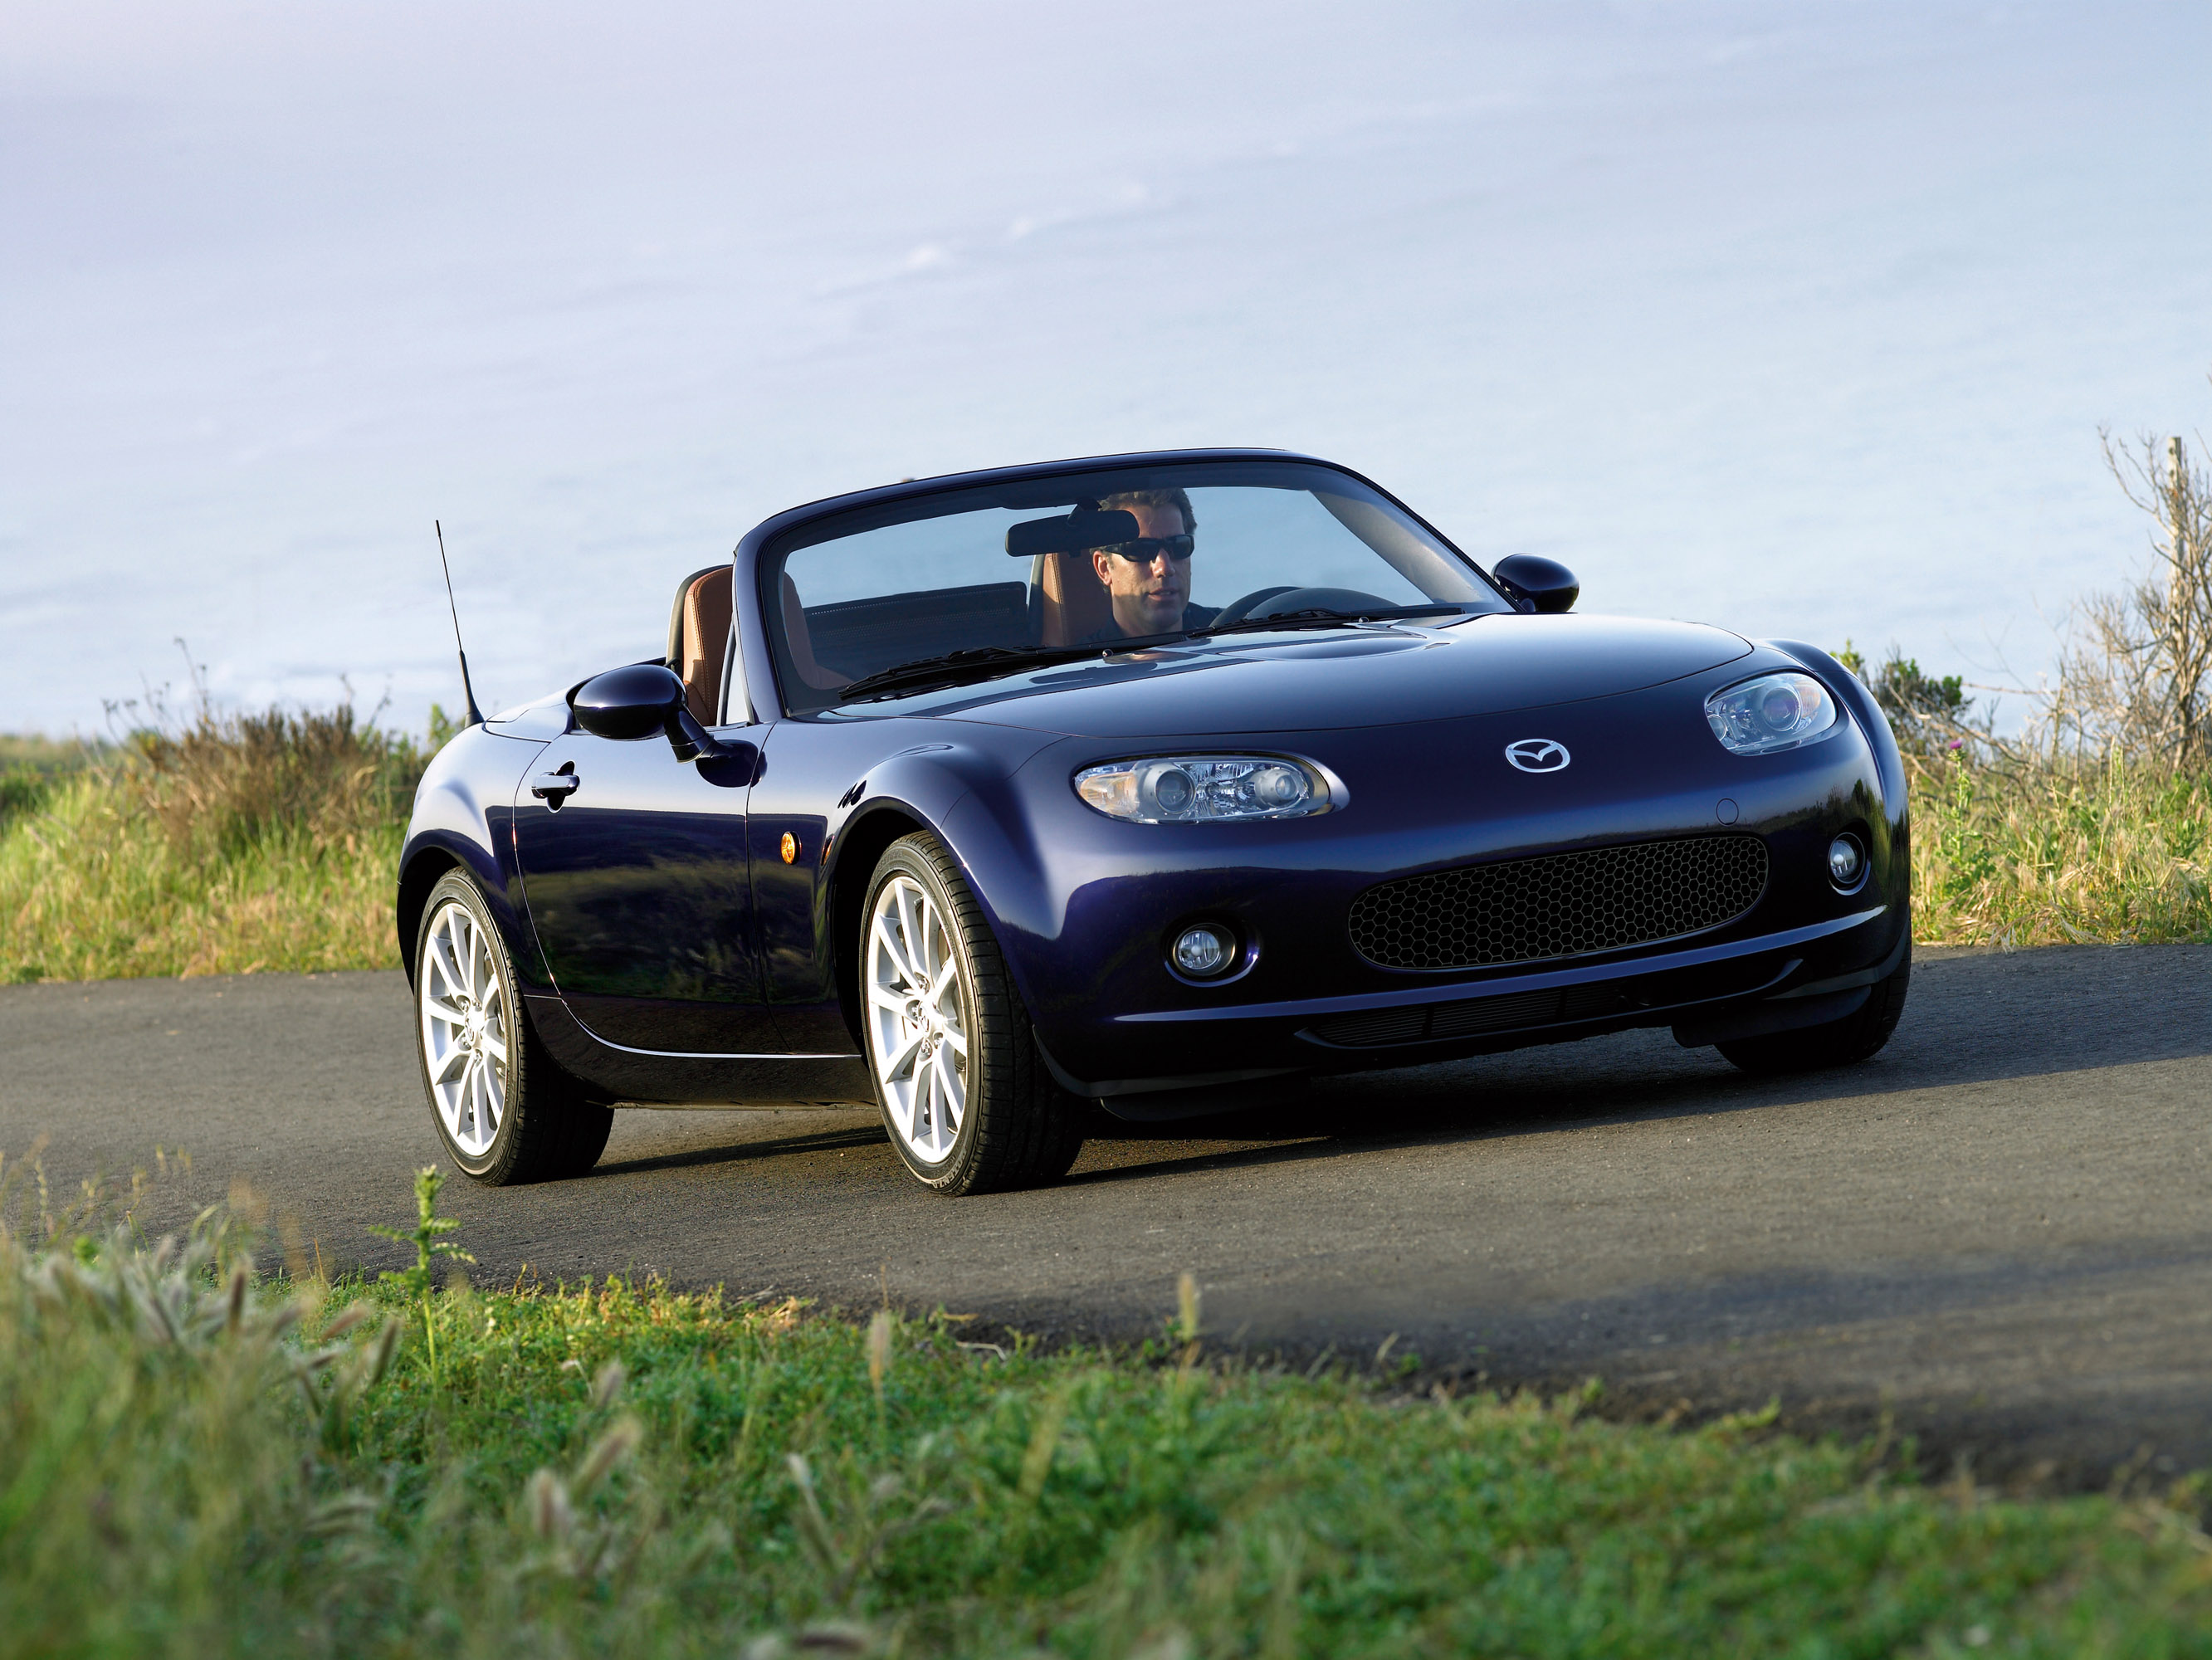 2006 mazda mx 5 roadster coupe hd pictures. Black Bedroom Furniture Sets. Home Design Ideas